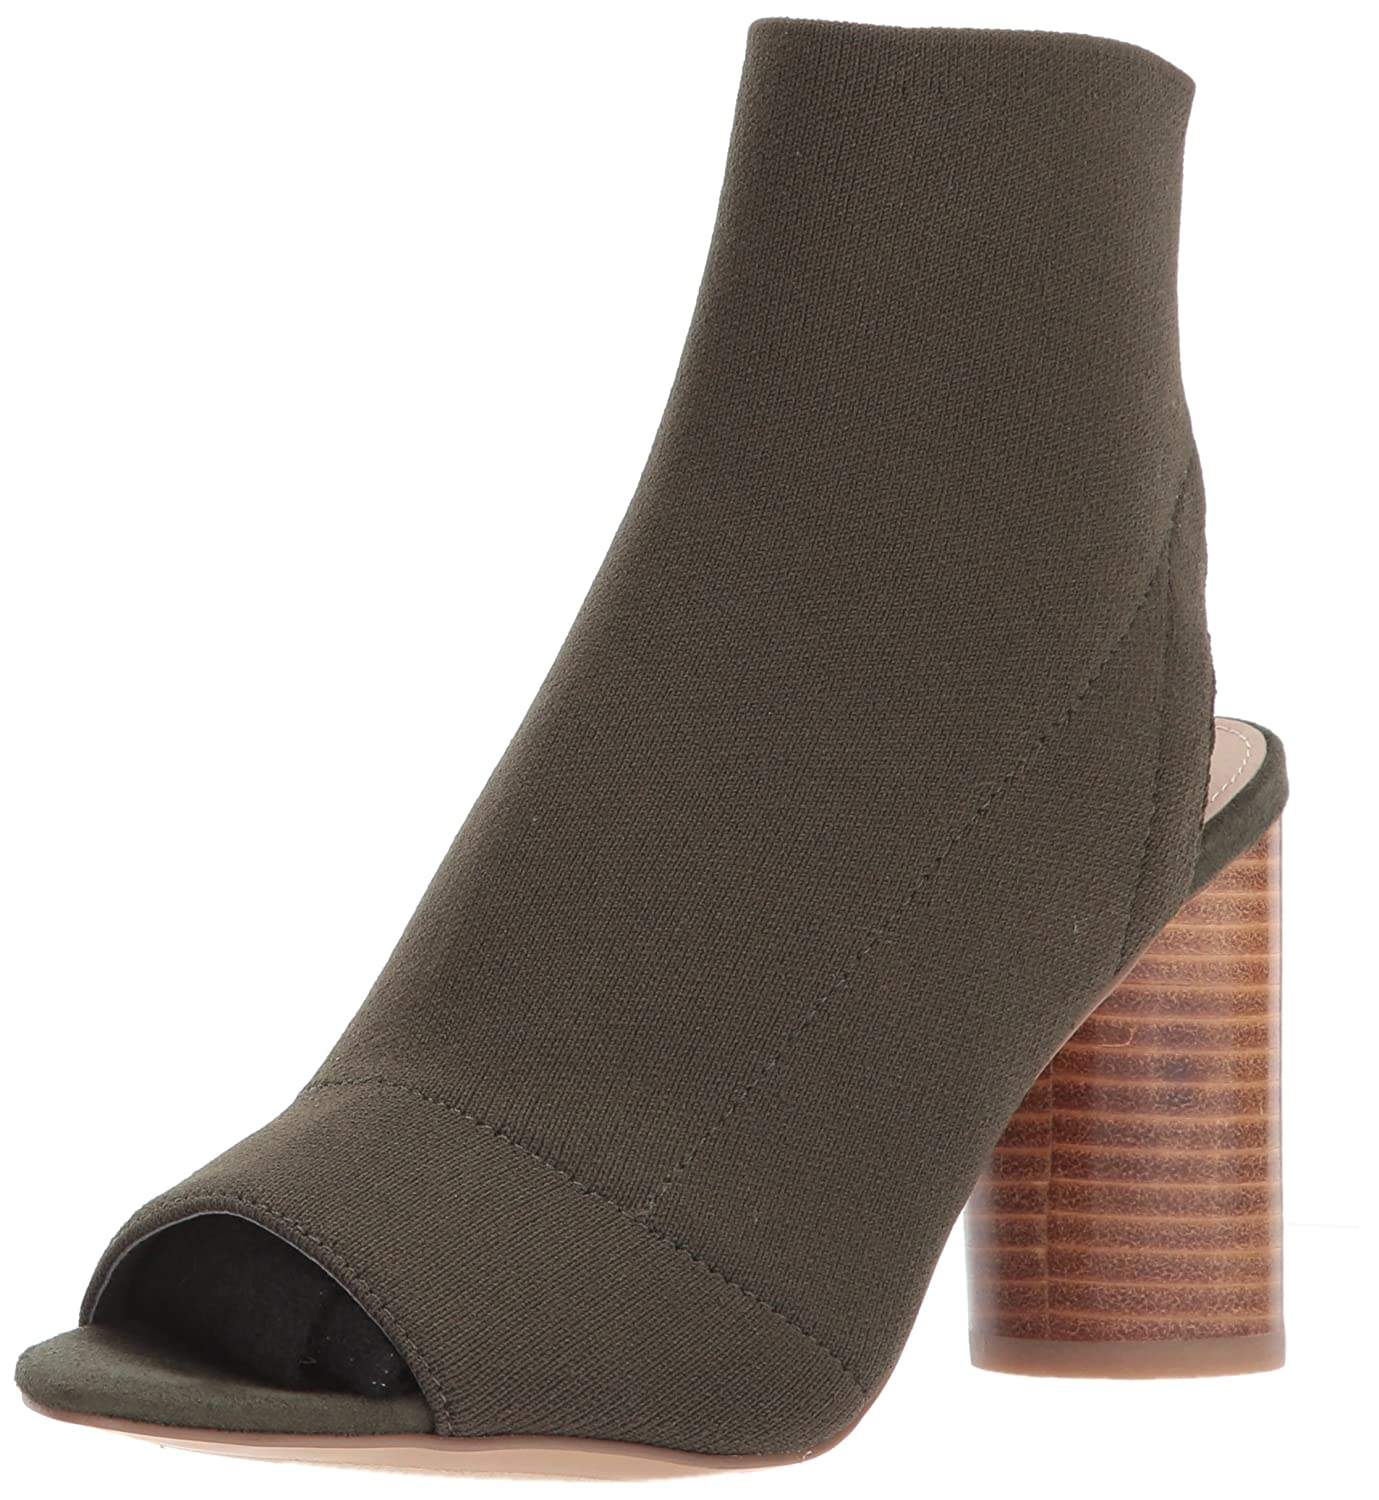 Steve Madden Women's Sunnie Ankle Bootie B06XH48P57 6.5 B(M) US|Olive